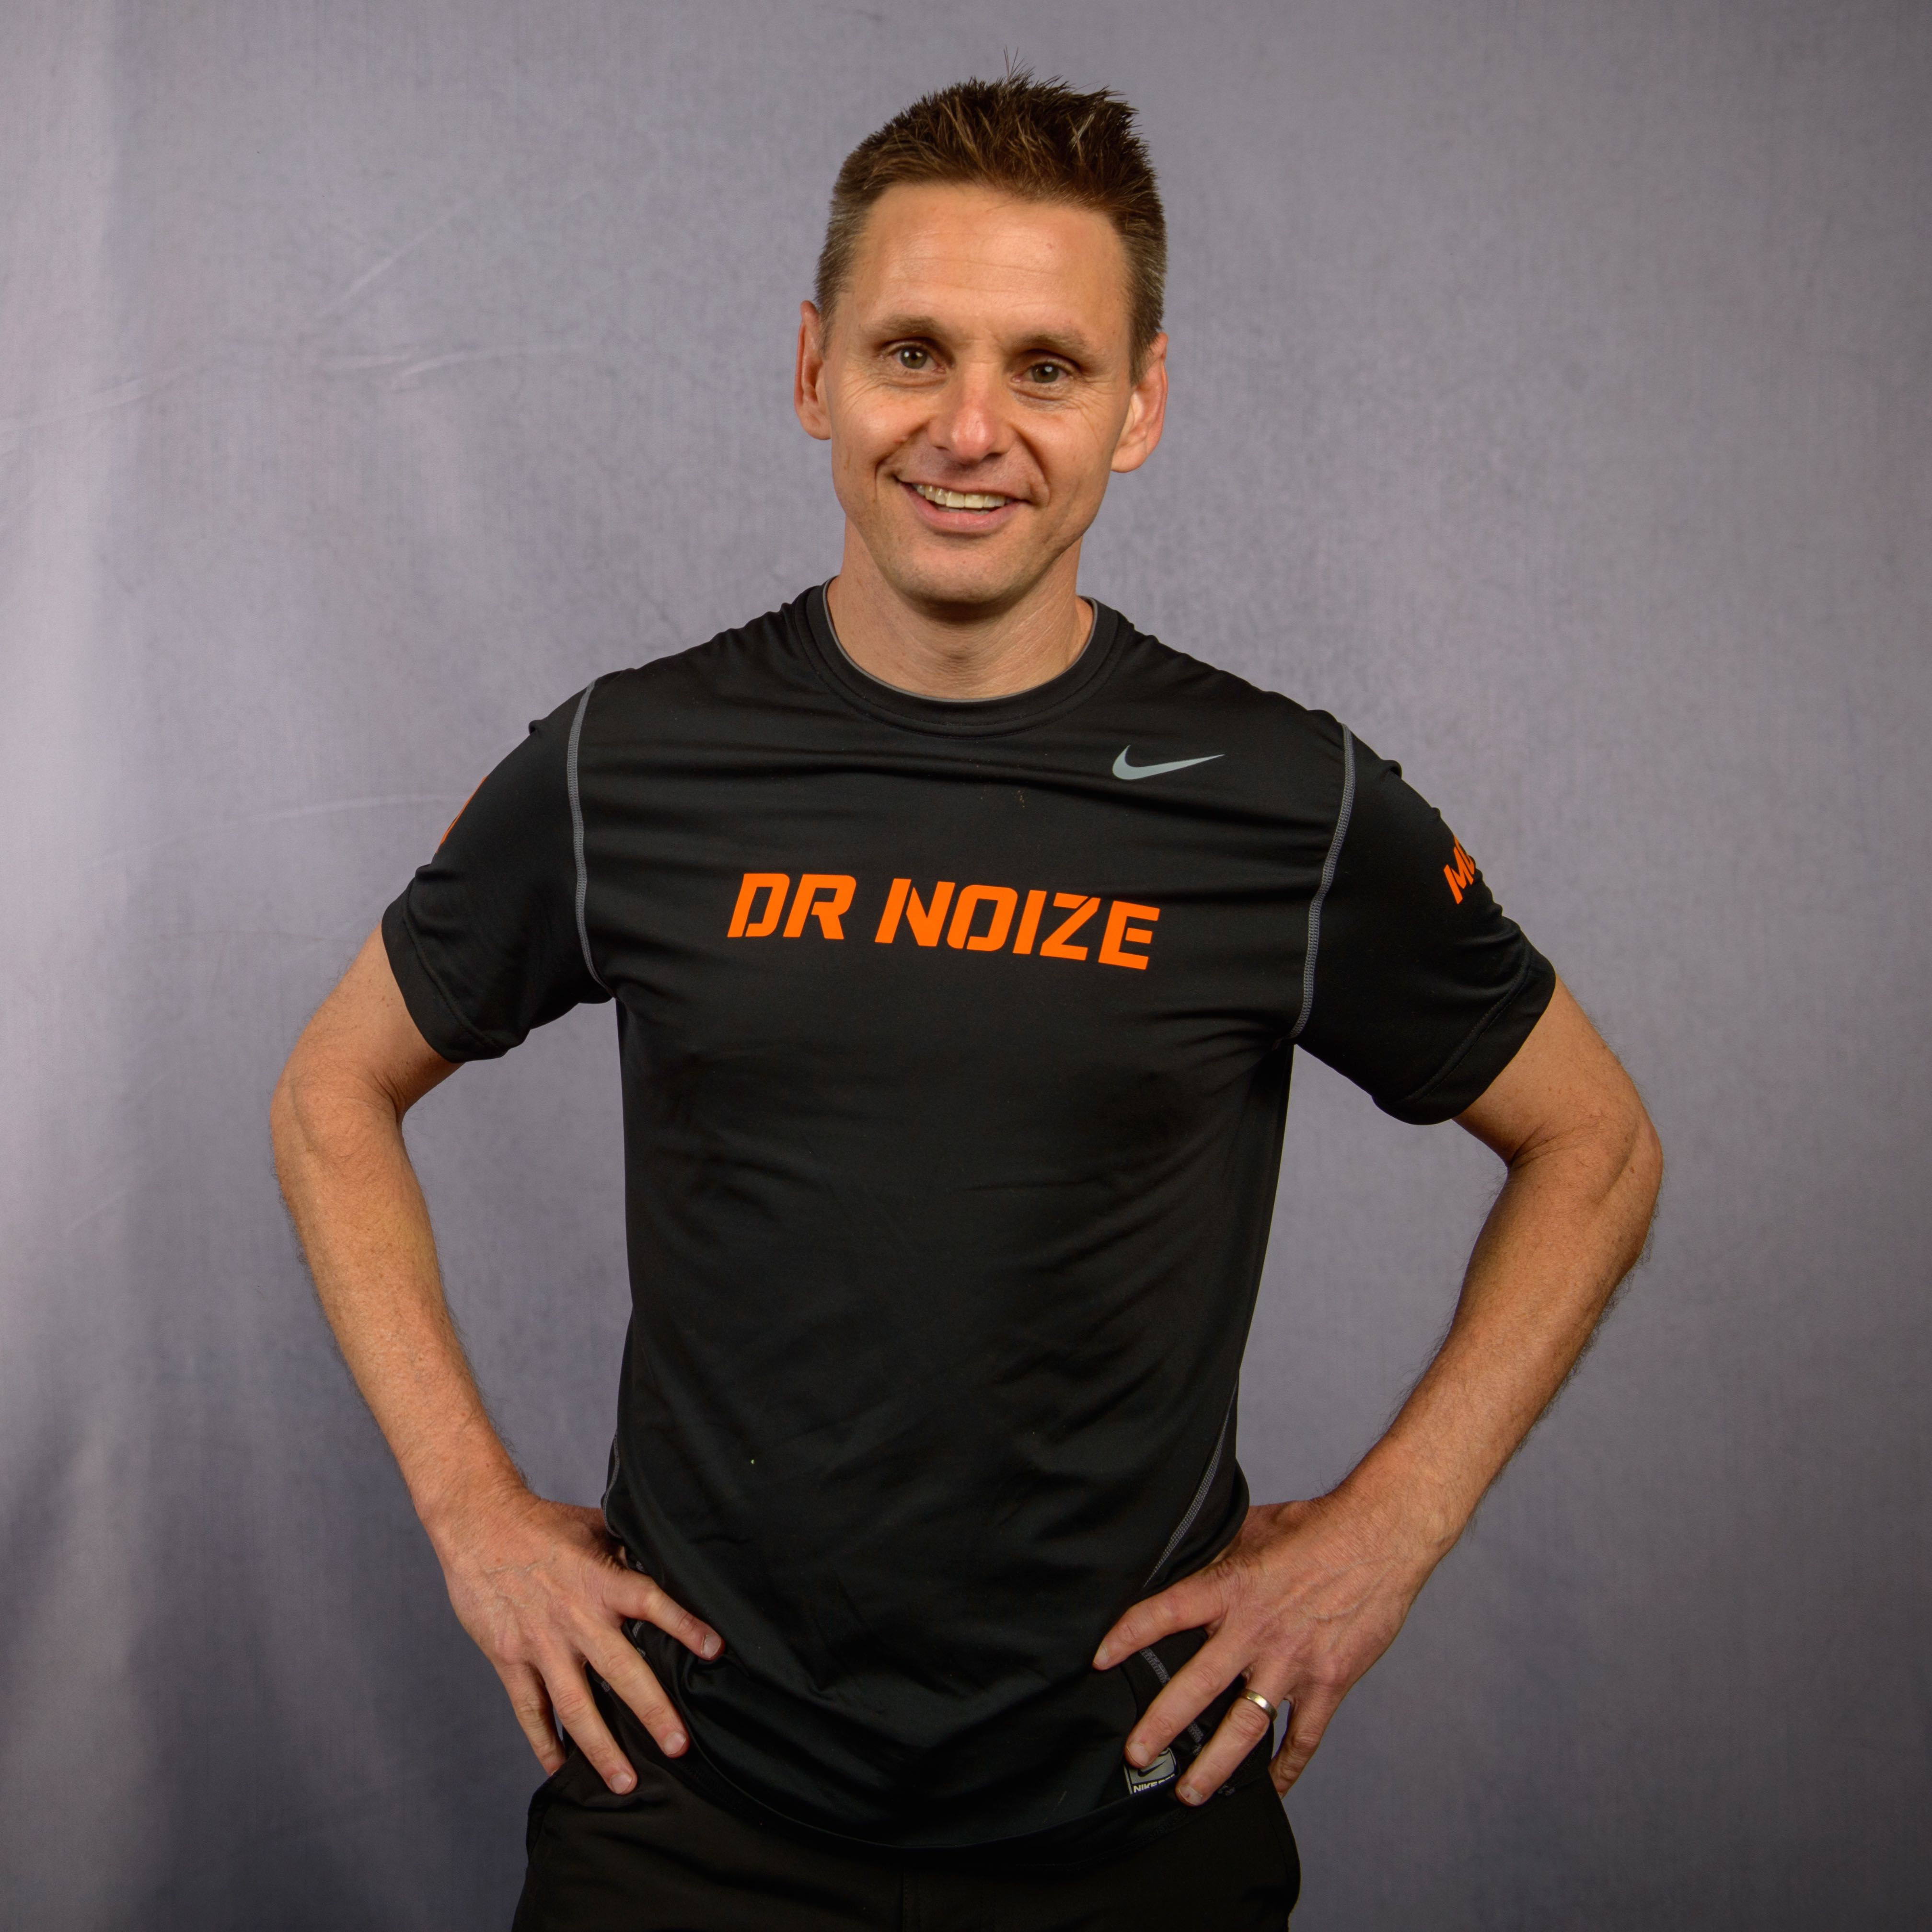 Doctor Noize